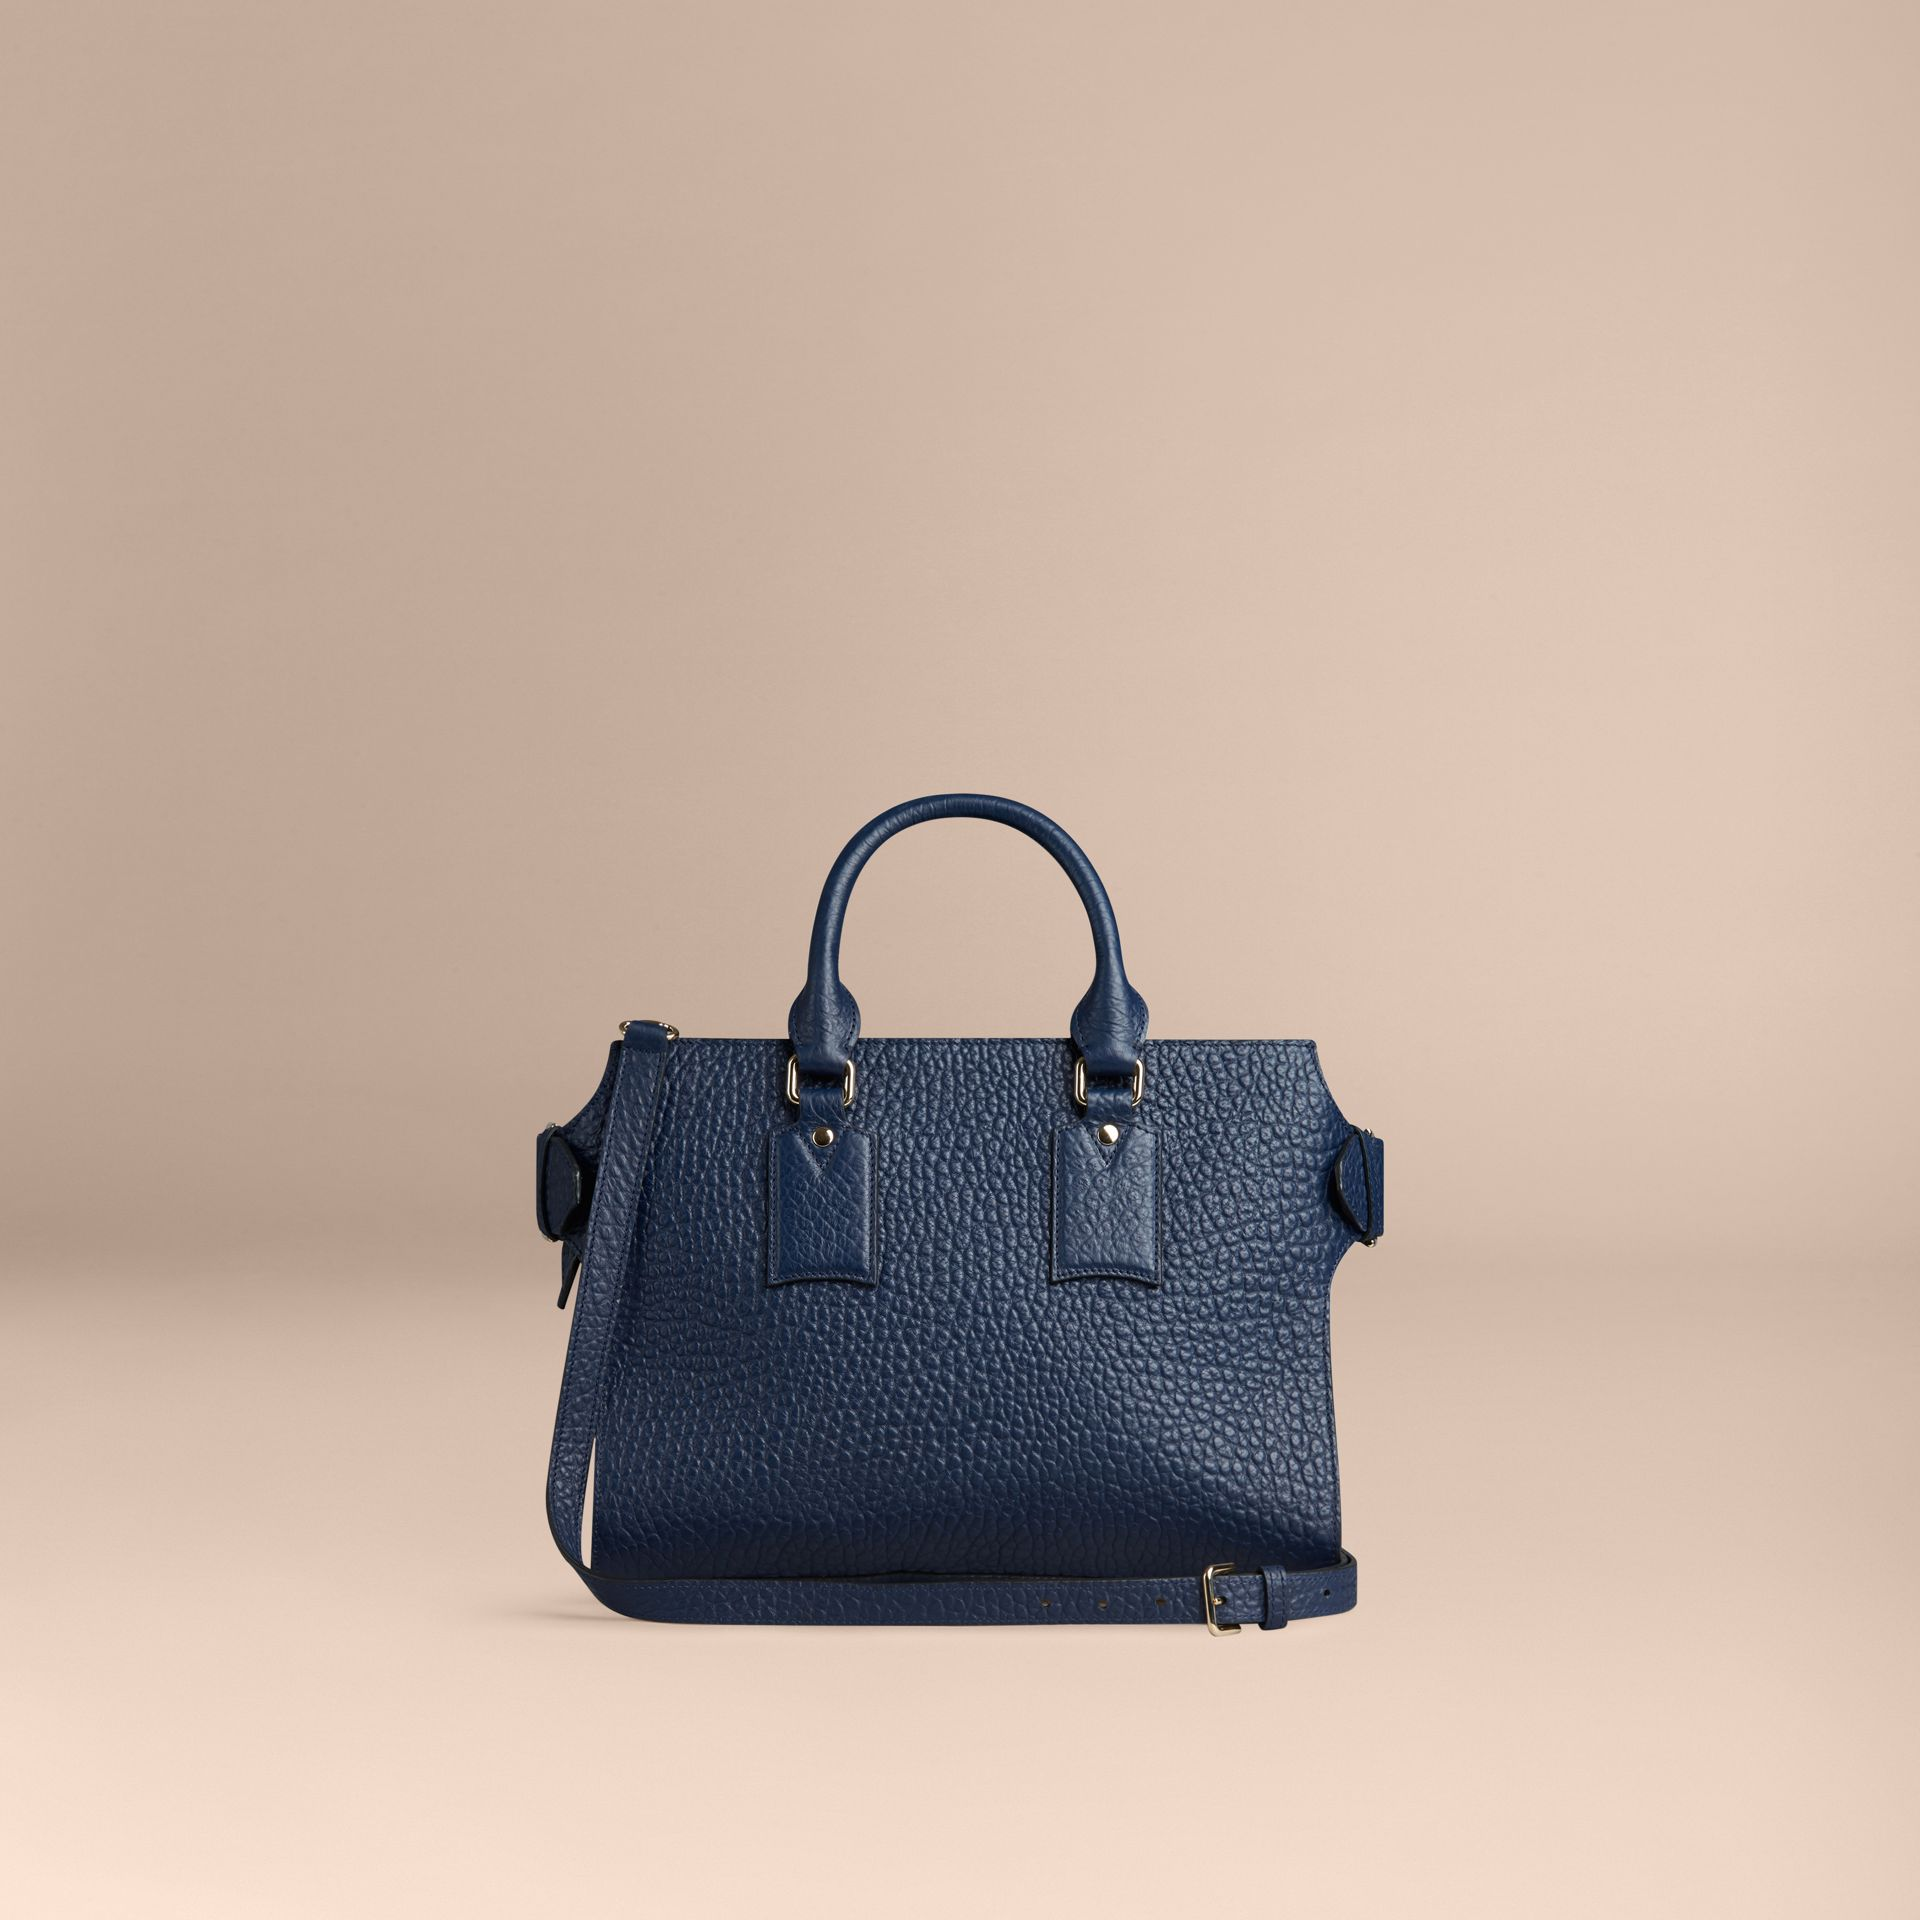 Bleu carbone Sac medium The Clifton en cuir grainé emblématique Bleu Carbone - photo de la galerie 5